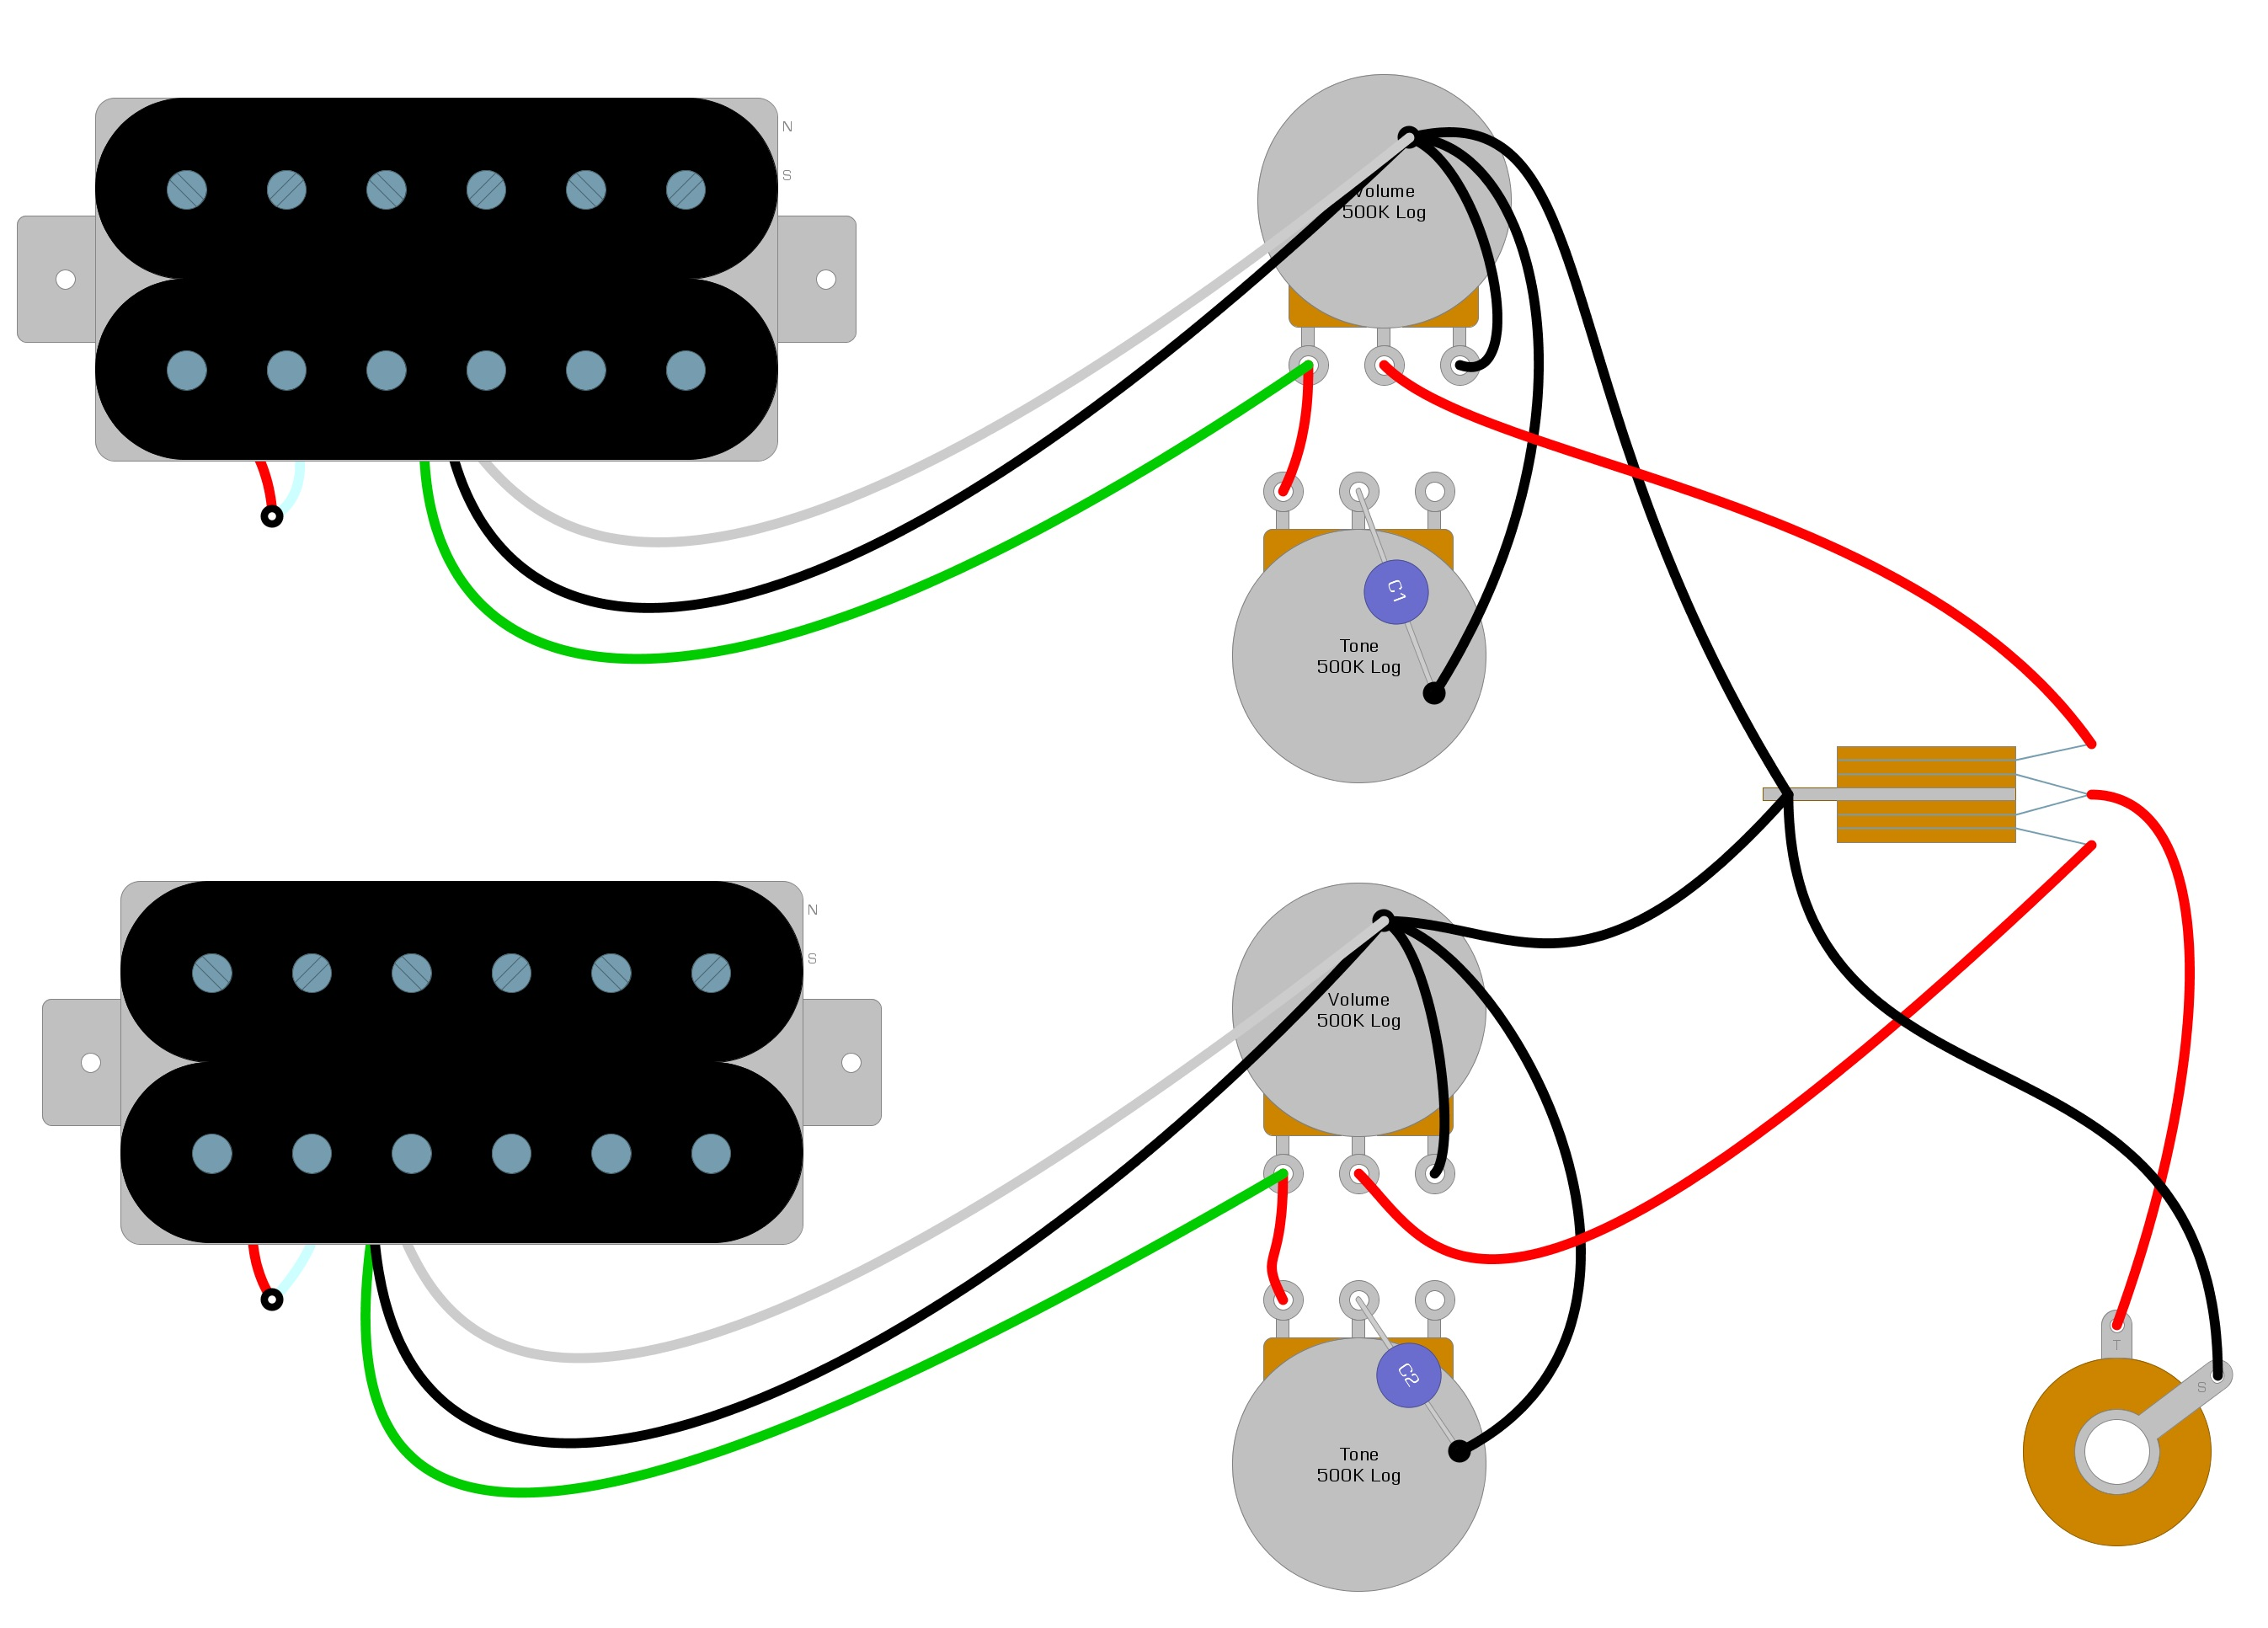 Les Paul Wiring Diagram – Humbucker Soup | Guitar Wire Harness Schematic |  | Humbucker Soup